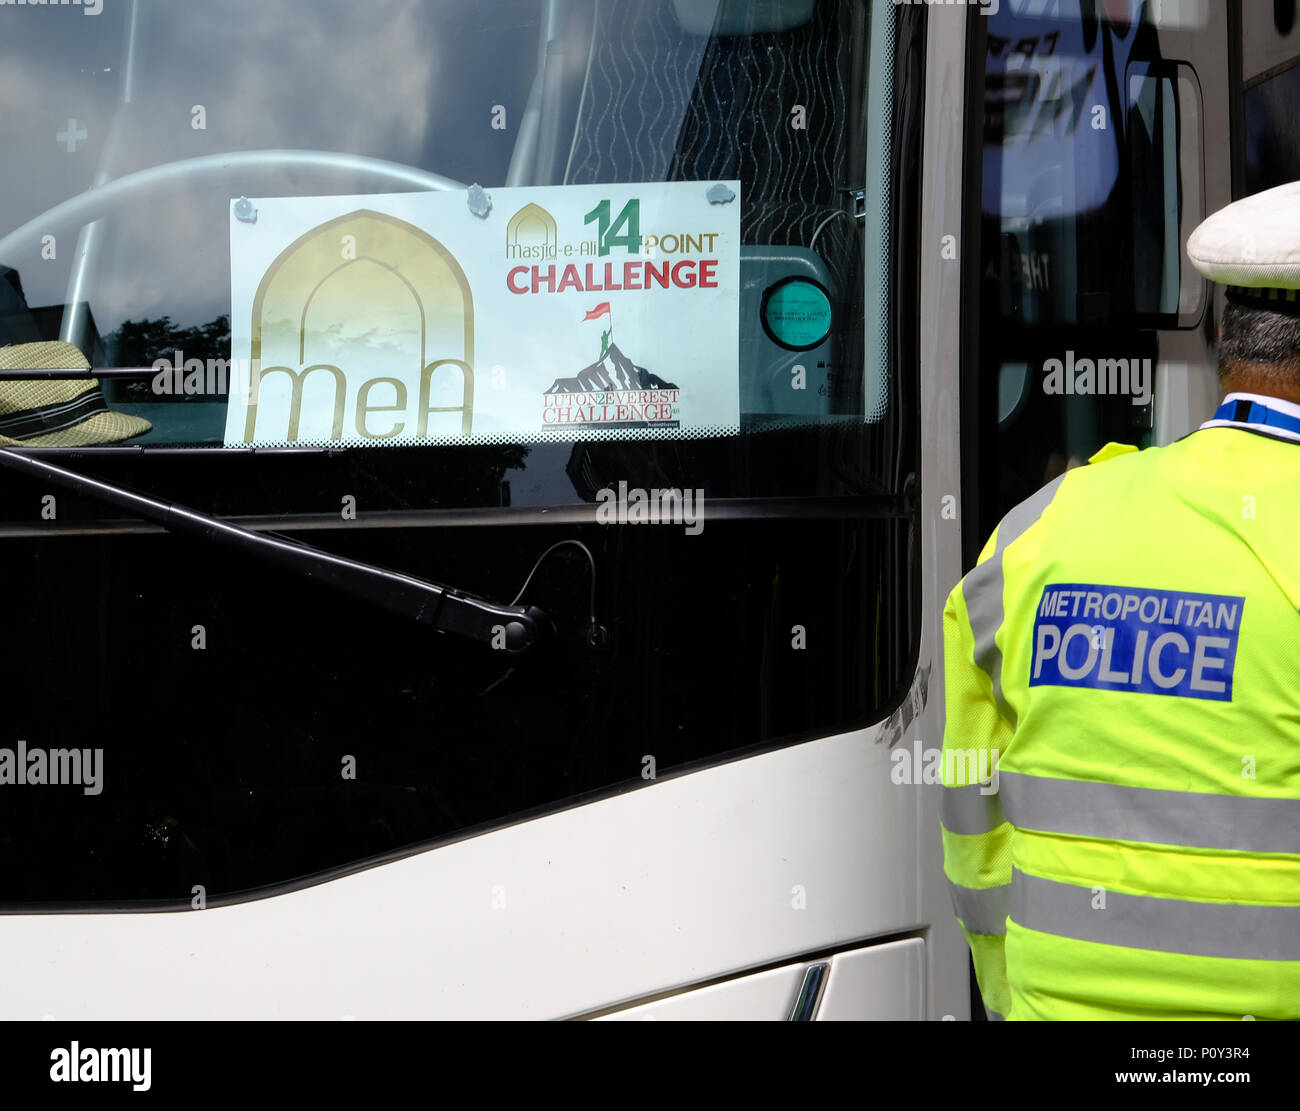 London, UK. 10th June 2018. Al Quds day protest organised by IHRC in London goes ahead despite demands that Hezbollah flags should not be flown. Counter protests from Israeli supporters and Free Tommy Robinson supporters led to a large police presence. Coaches brought Muslims from Luton for Al- quds Credit: Londonphotos/Alamy Live News - Stock Image